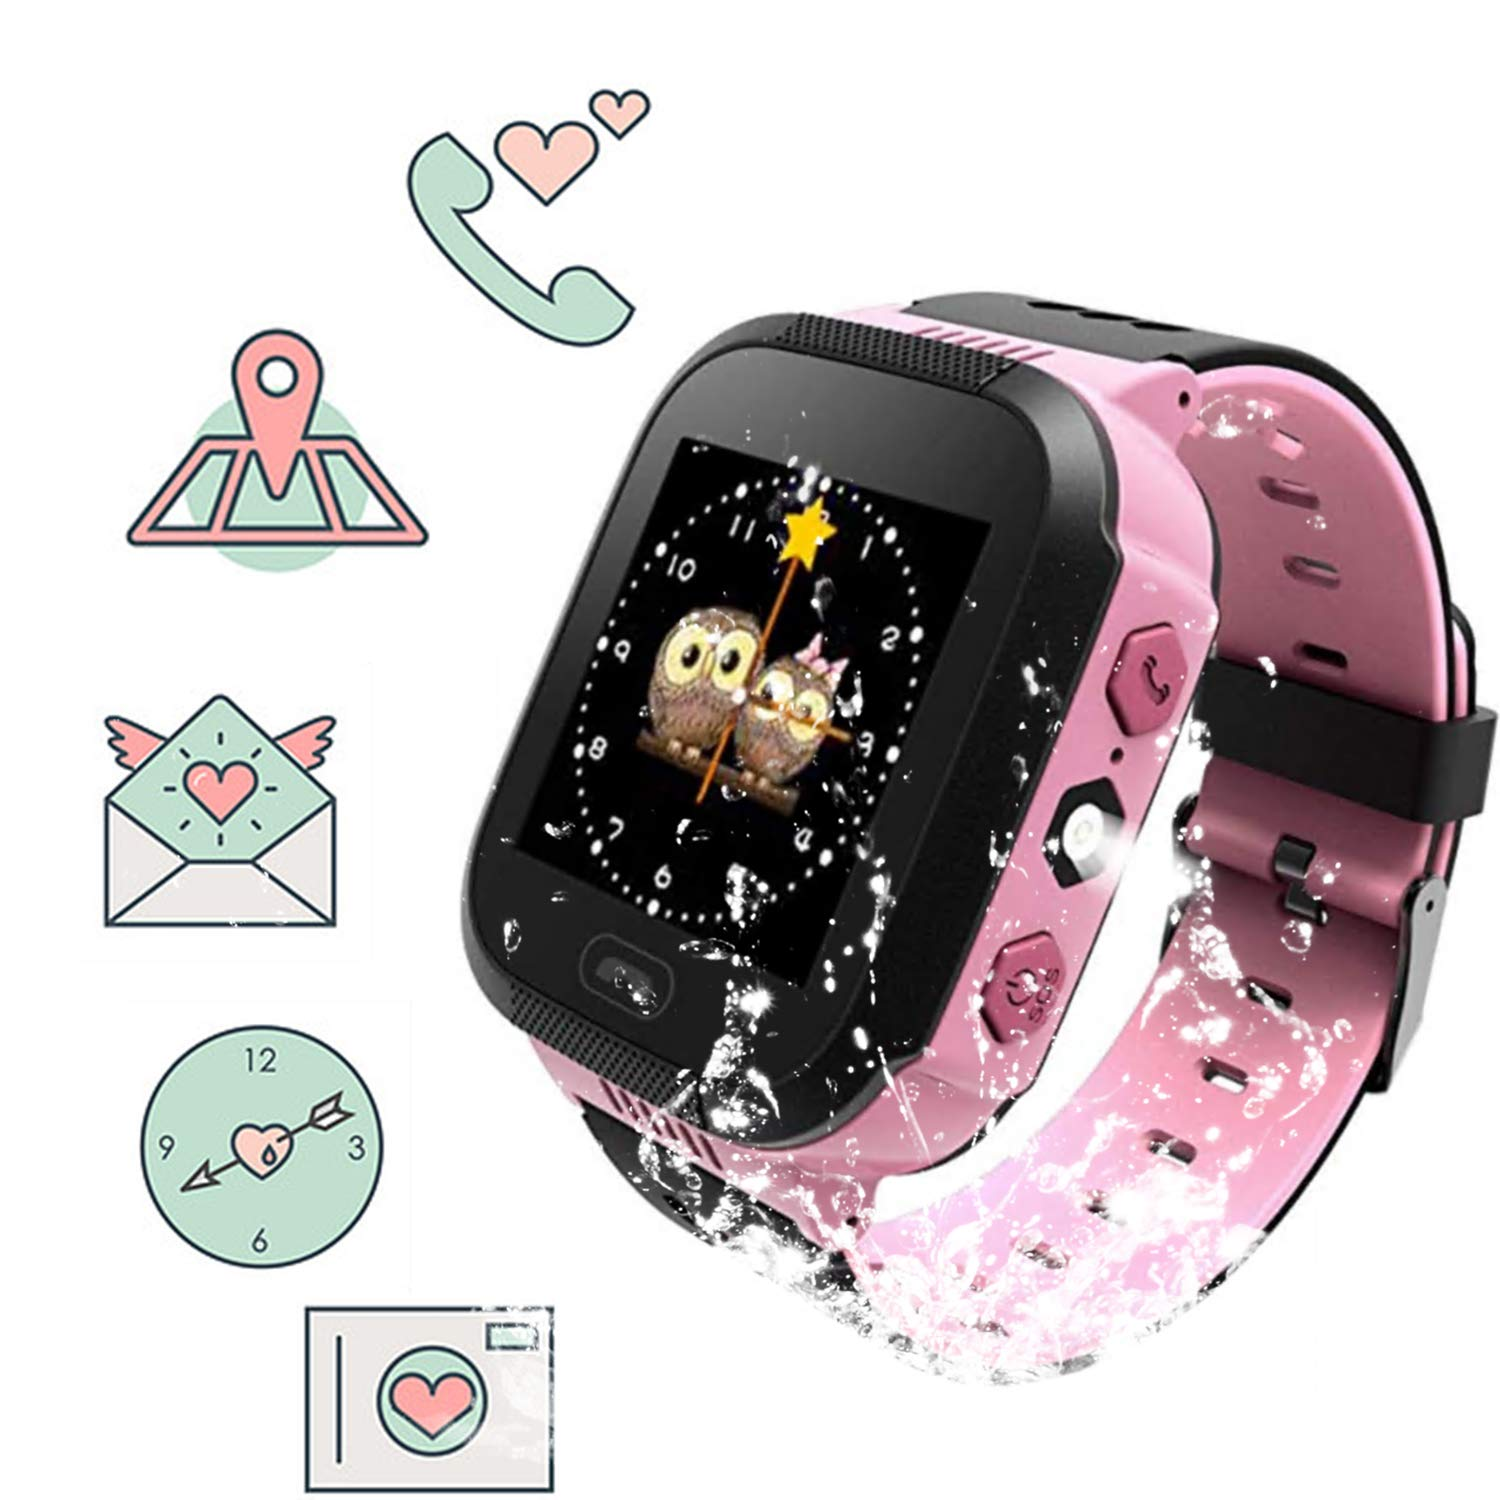 """Kids Smartwatch for Boys and Girls Children GPS Touch Phone Wrist Watch with 1.44"""" Touch Screen and Anti-Lost SOS Call GPS LBS Locator Smartwatch for Kids Gift, Compatible with iOS & Android(Pink)…"""